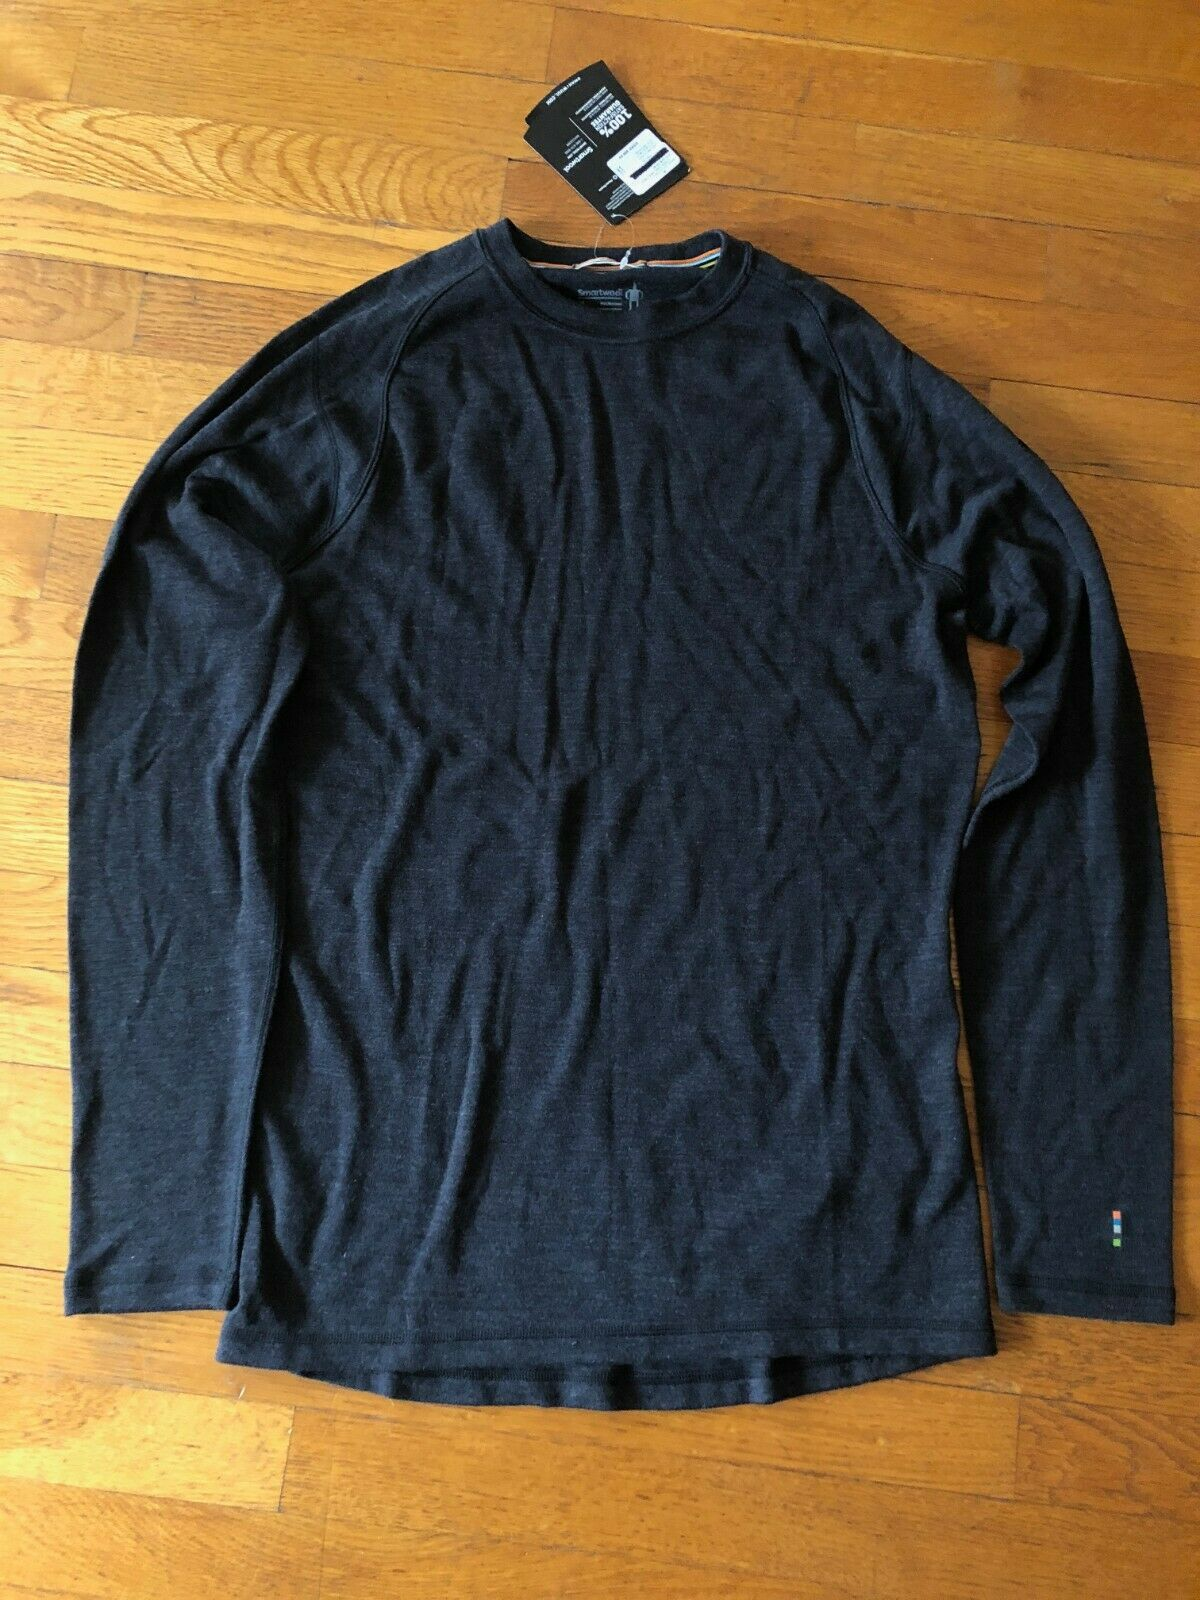 NWT Men's Smartwool Merino 250 LS Crew Base Layer - Size M